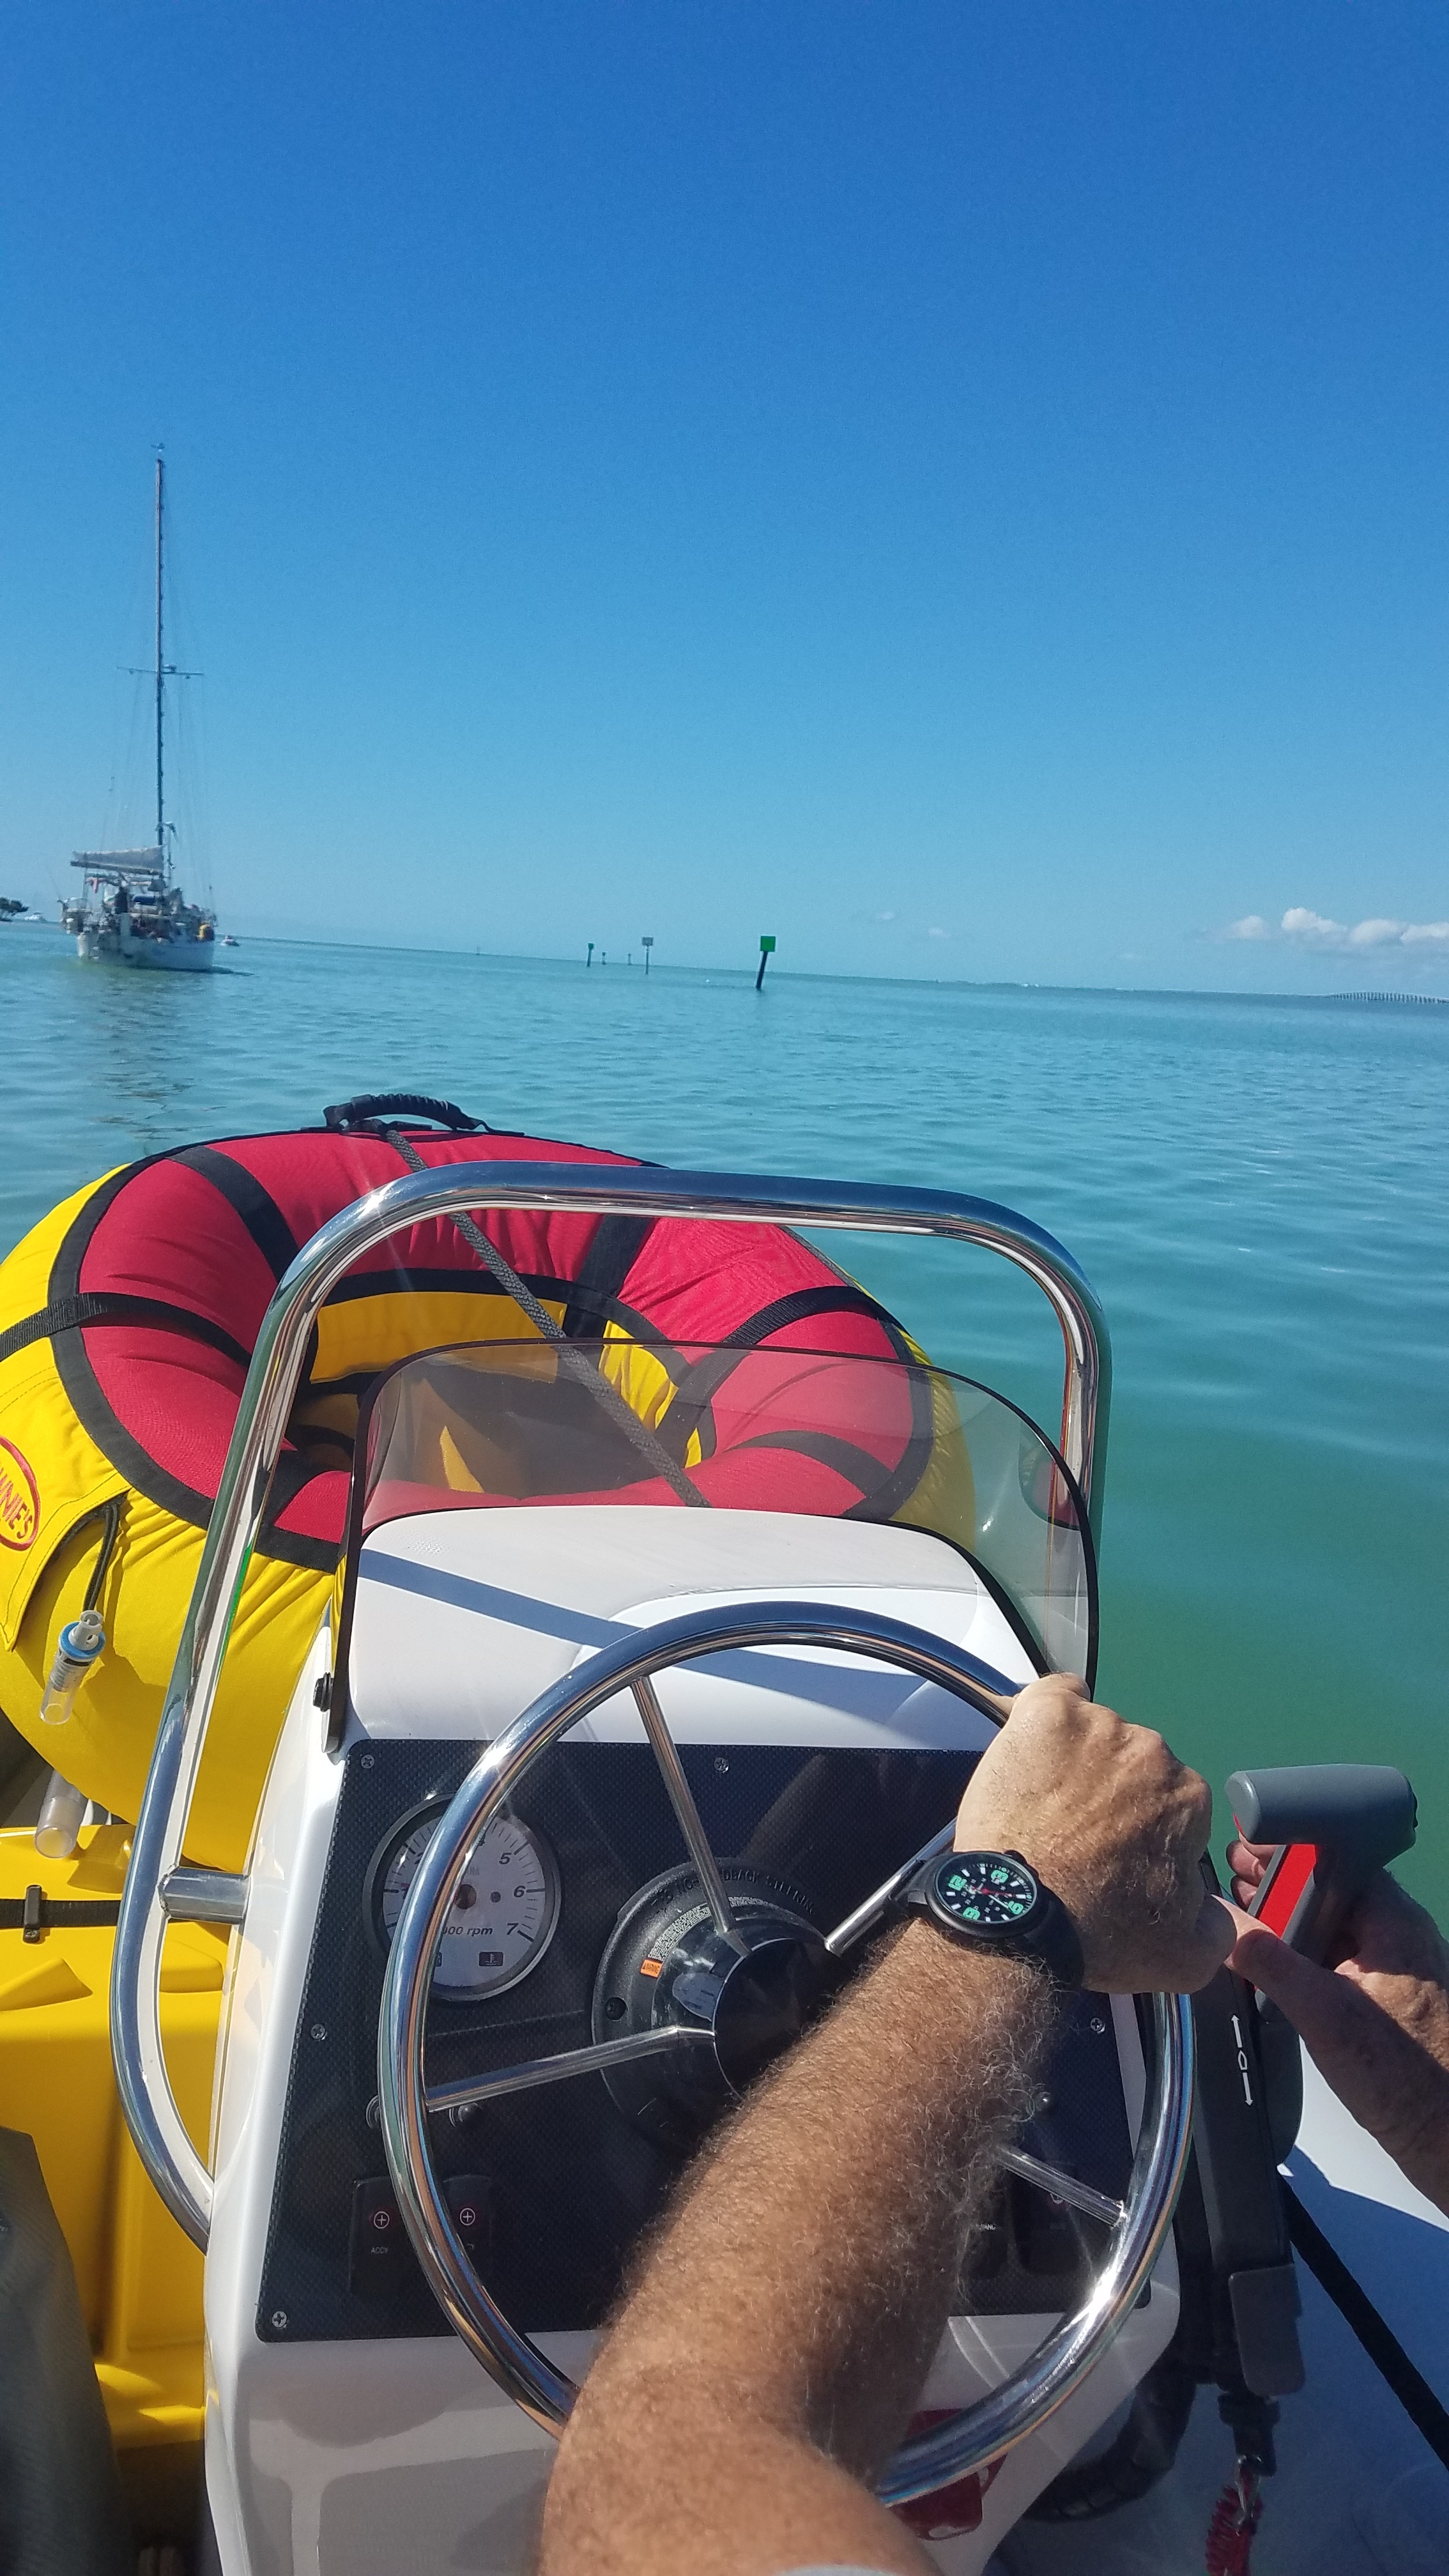 The rig does take up the whole front end of the tender as we head out to Sombrero Reef marine reserve